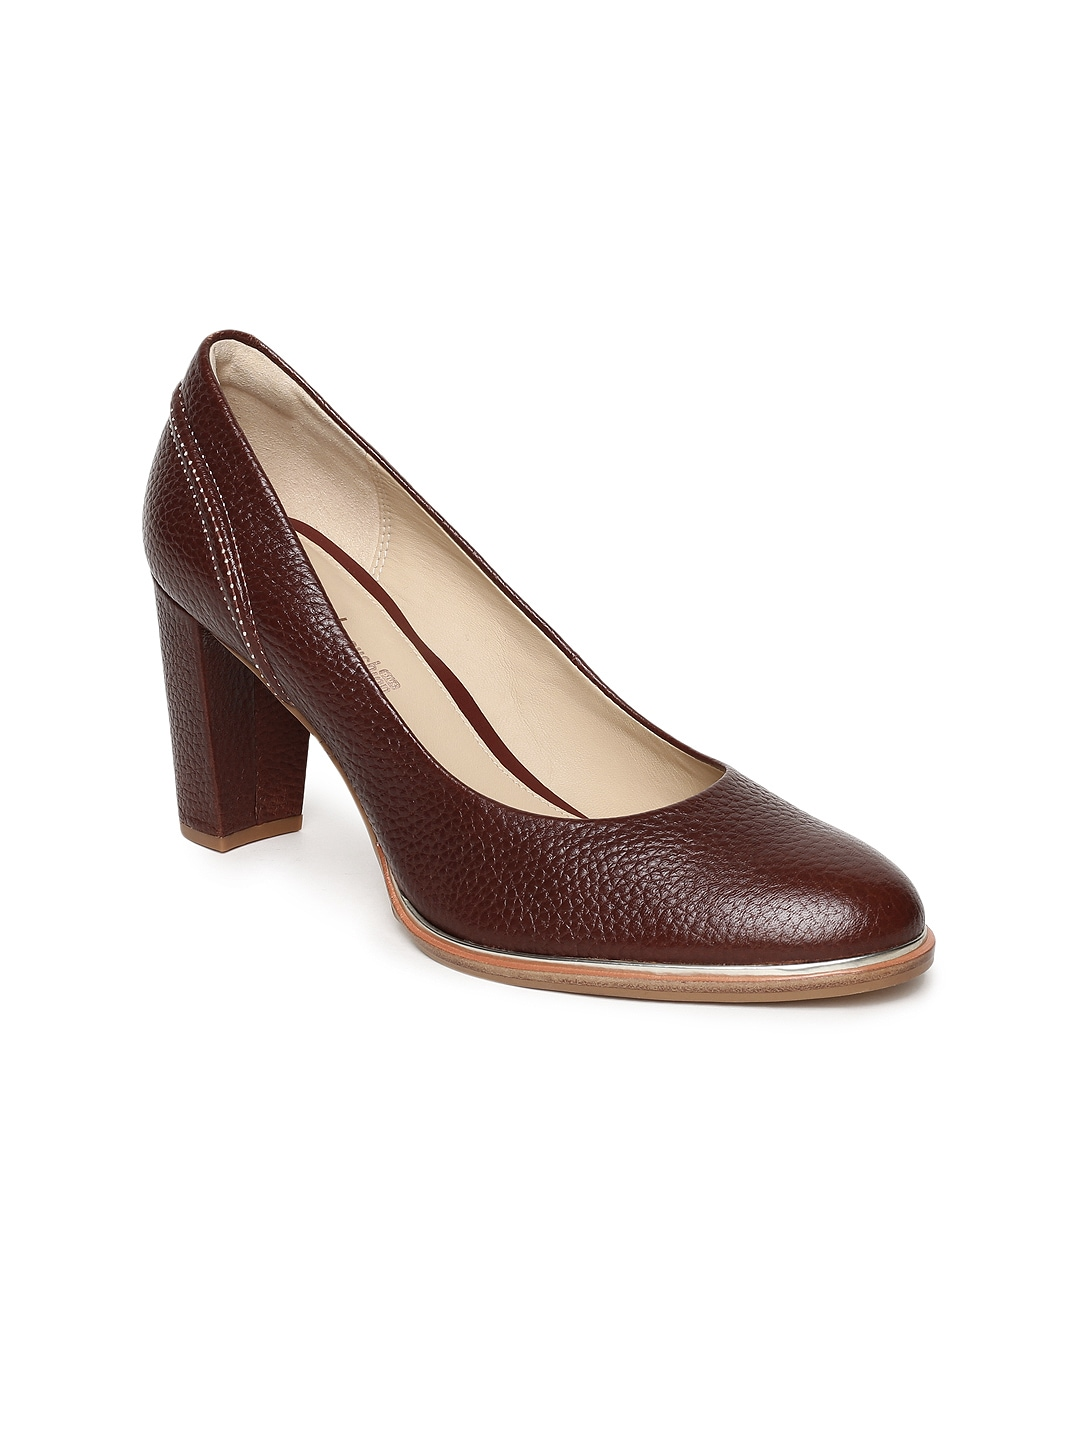 57316bea6af Women s Clarks Shoes - Buy Clarks Shoes for Women Online in India